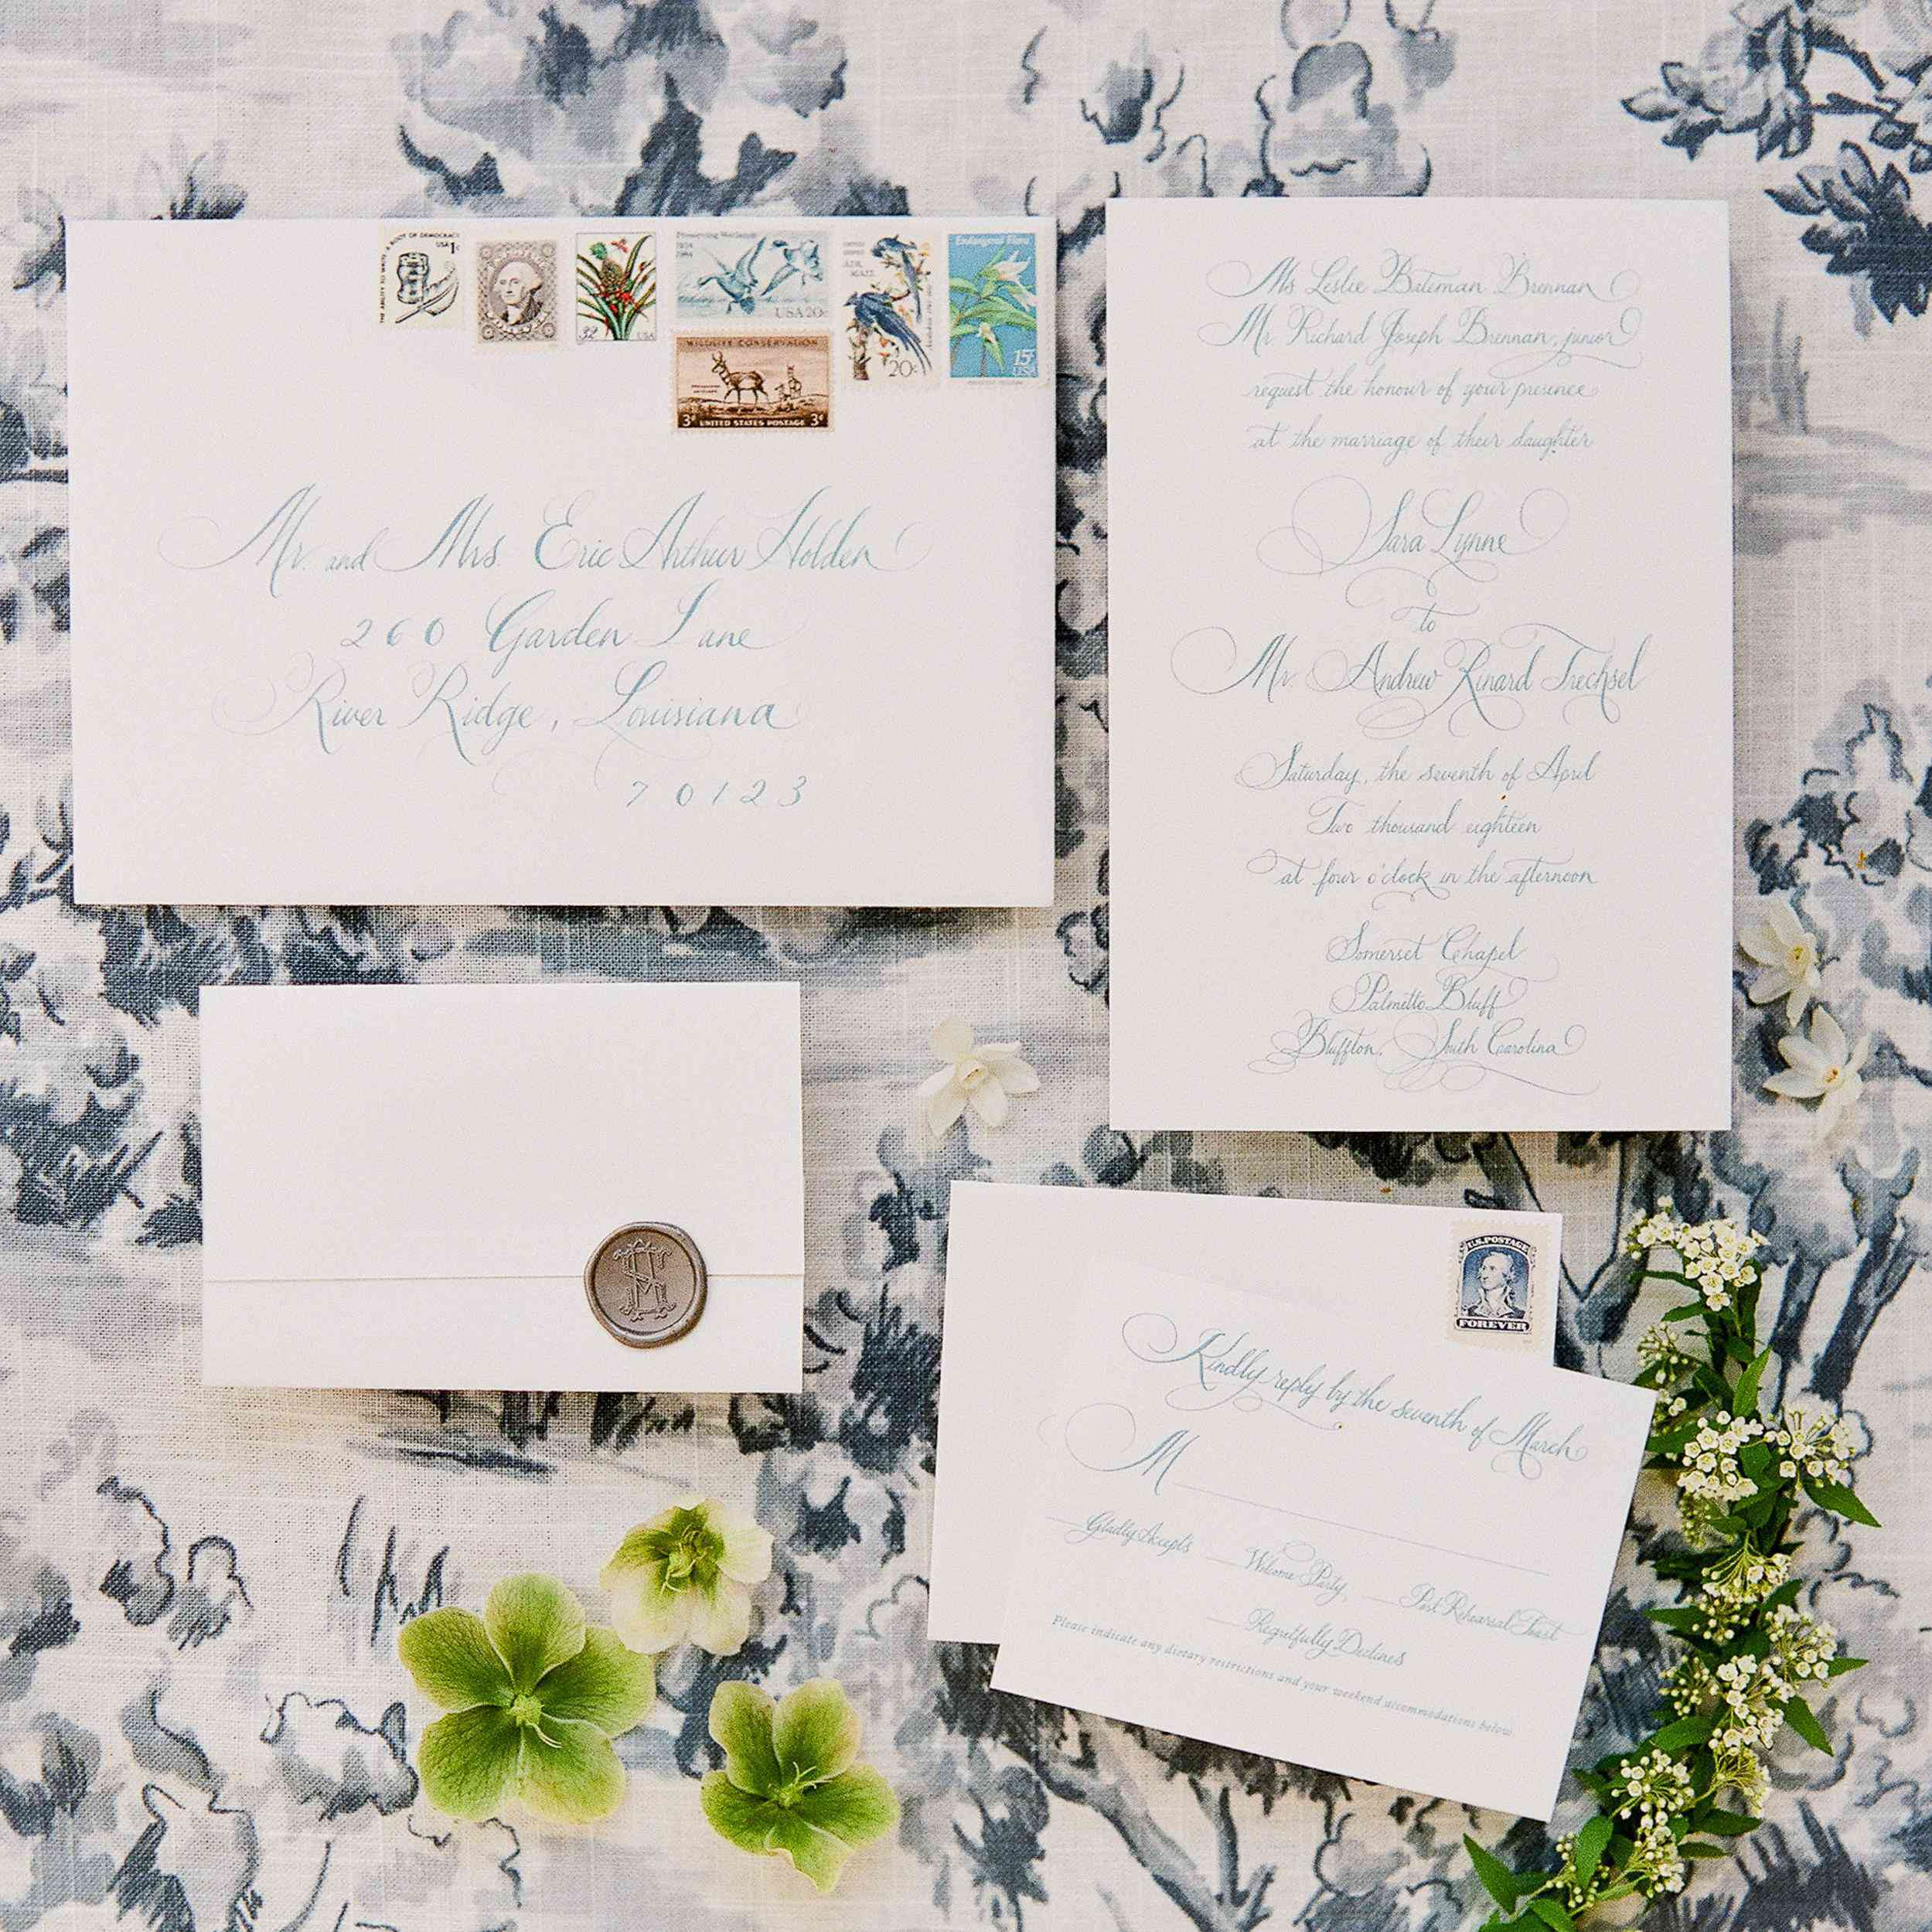 Oops! Here's What to Do If You Notice a Typo on Your Wedding Invitations